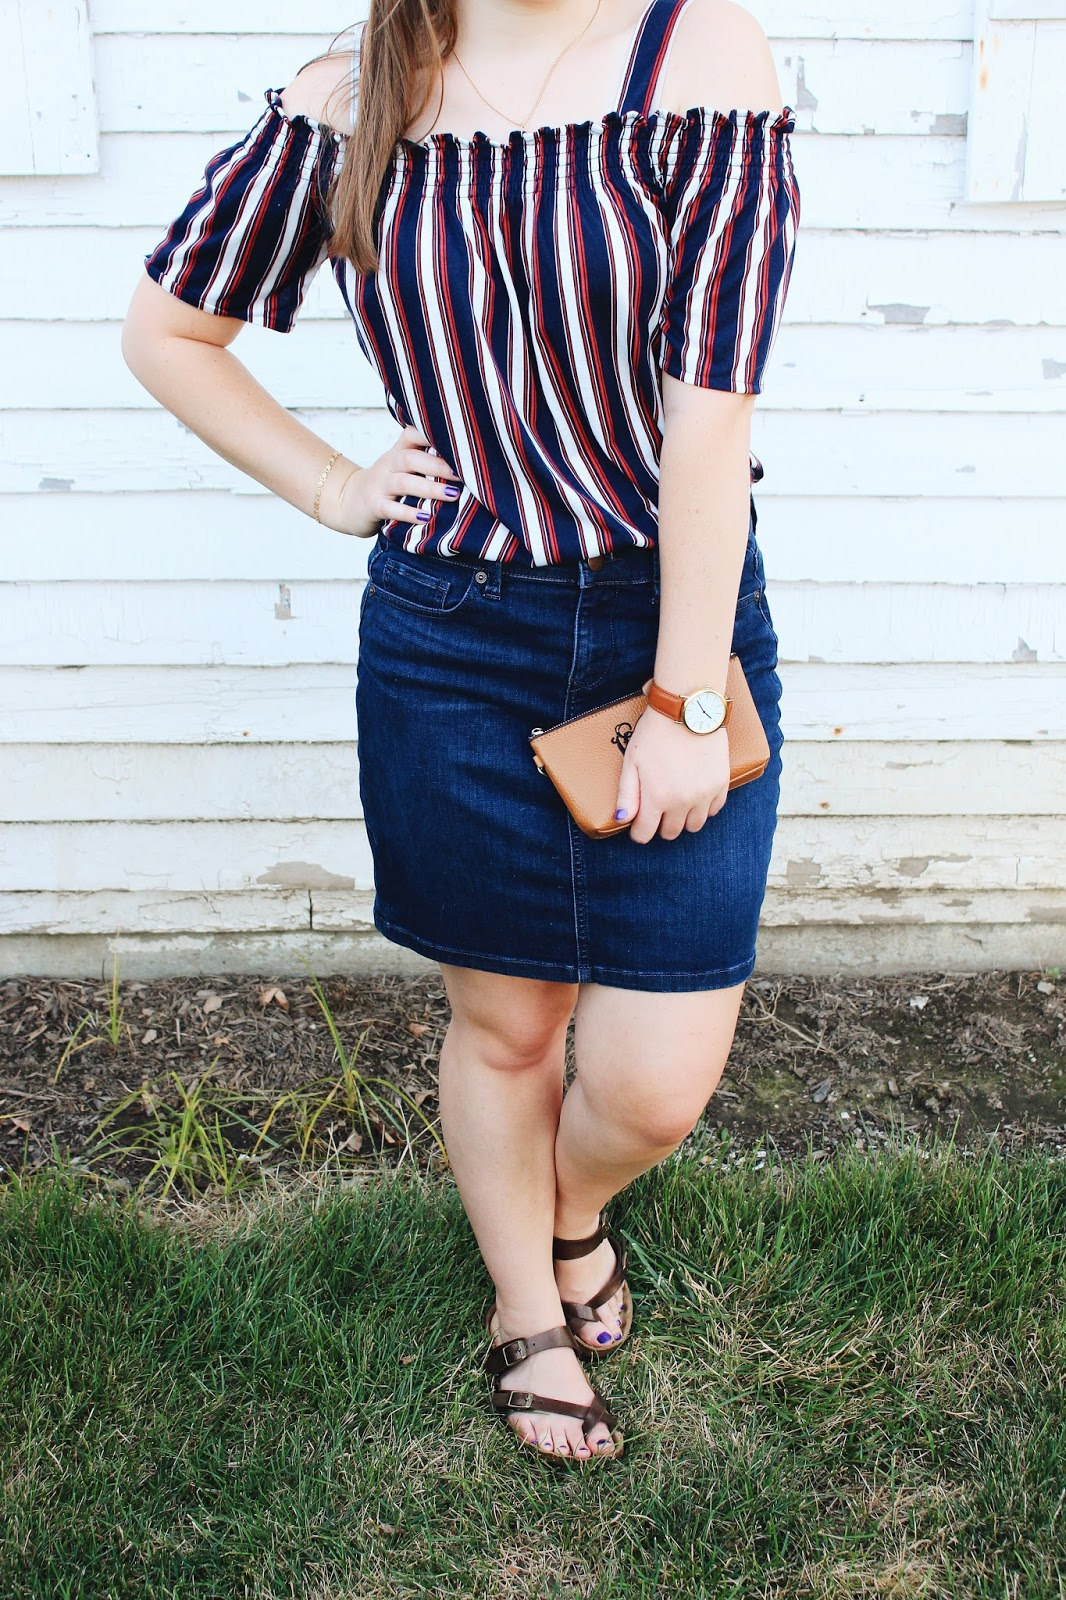 Styling a Denim Skirt